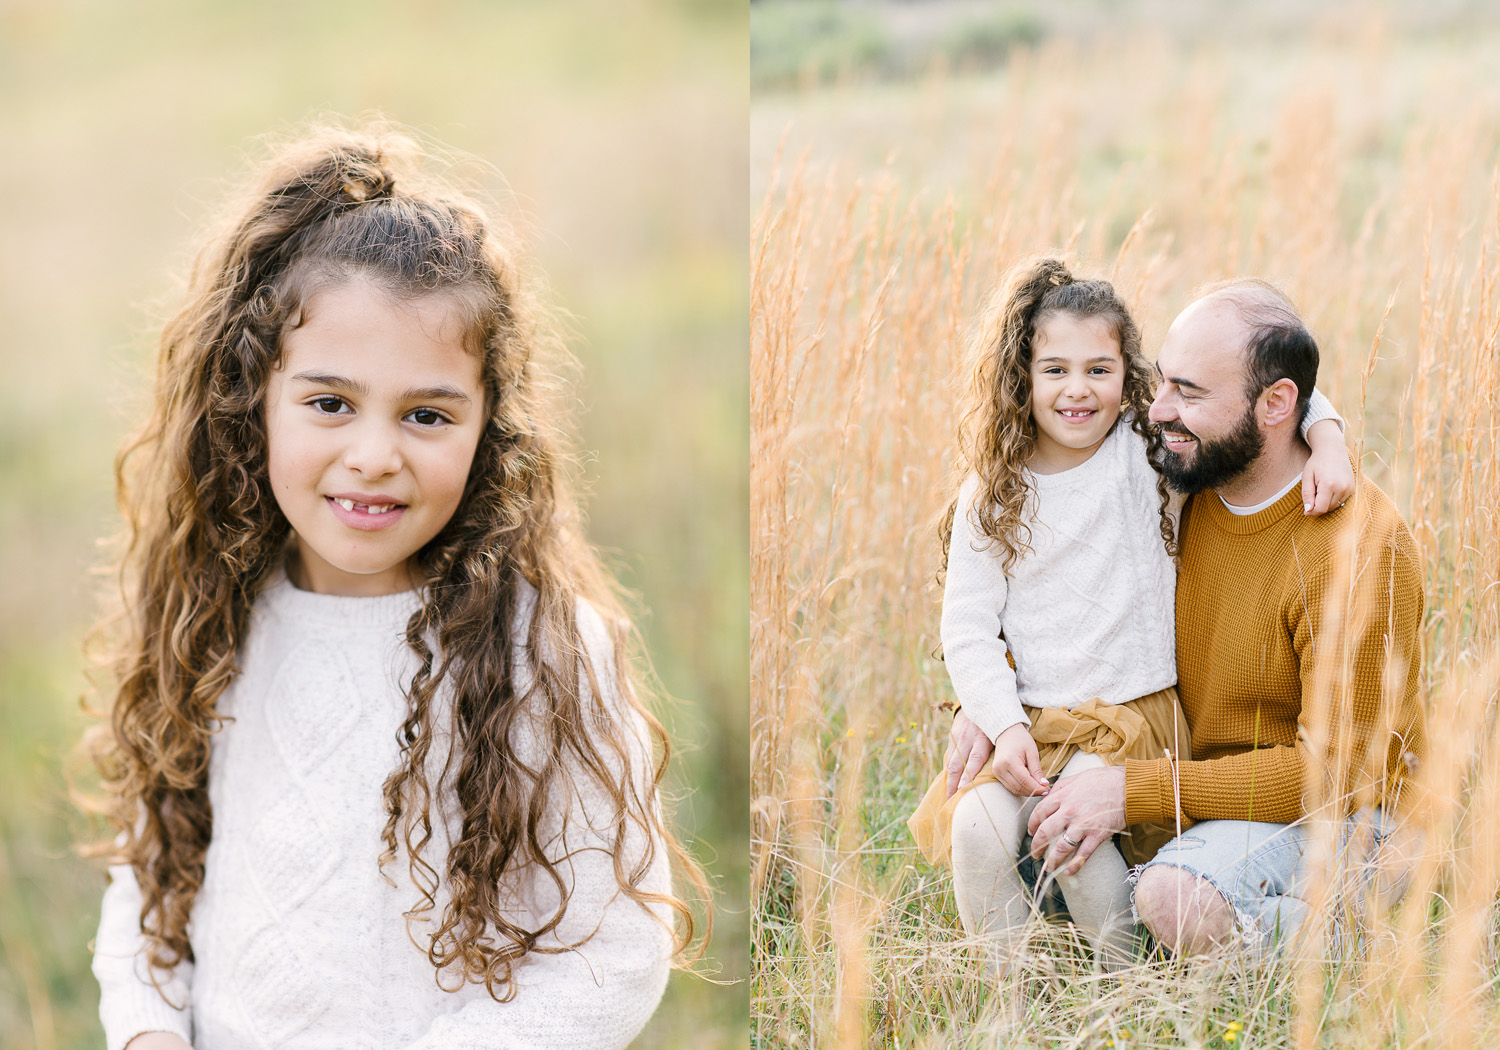 Two images side by side. First image of young girl with missing front tooth and long hair smiling sweetly, second image of young girl sitting on her Dad's knee in field of long grass, as photographed by Sutherland Shire Family Photographer Sevenish Photography